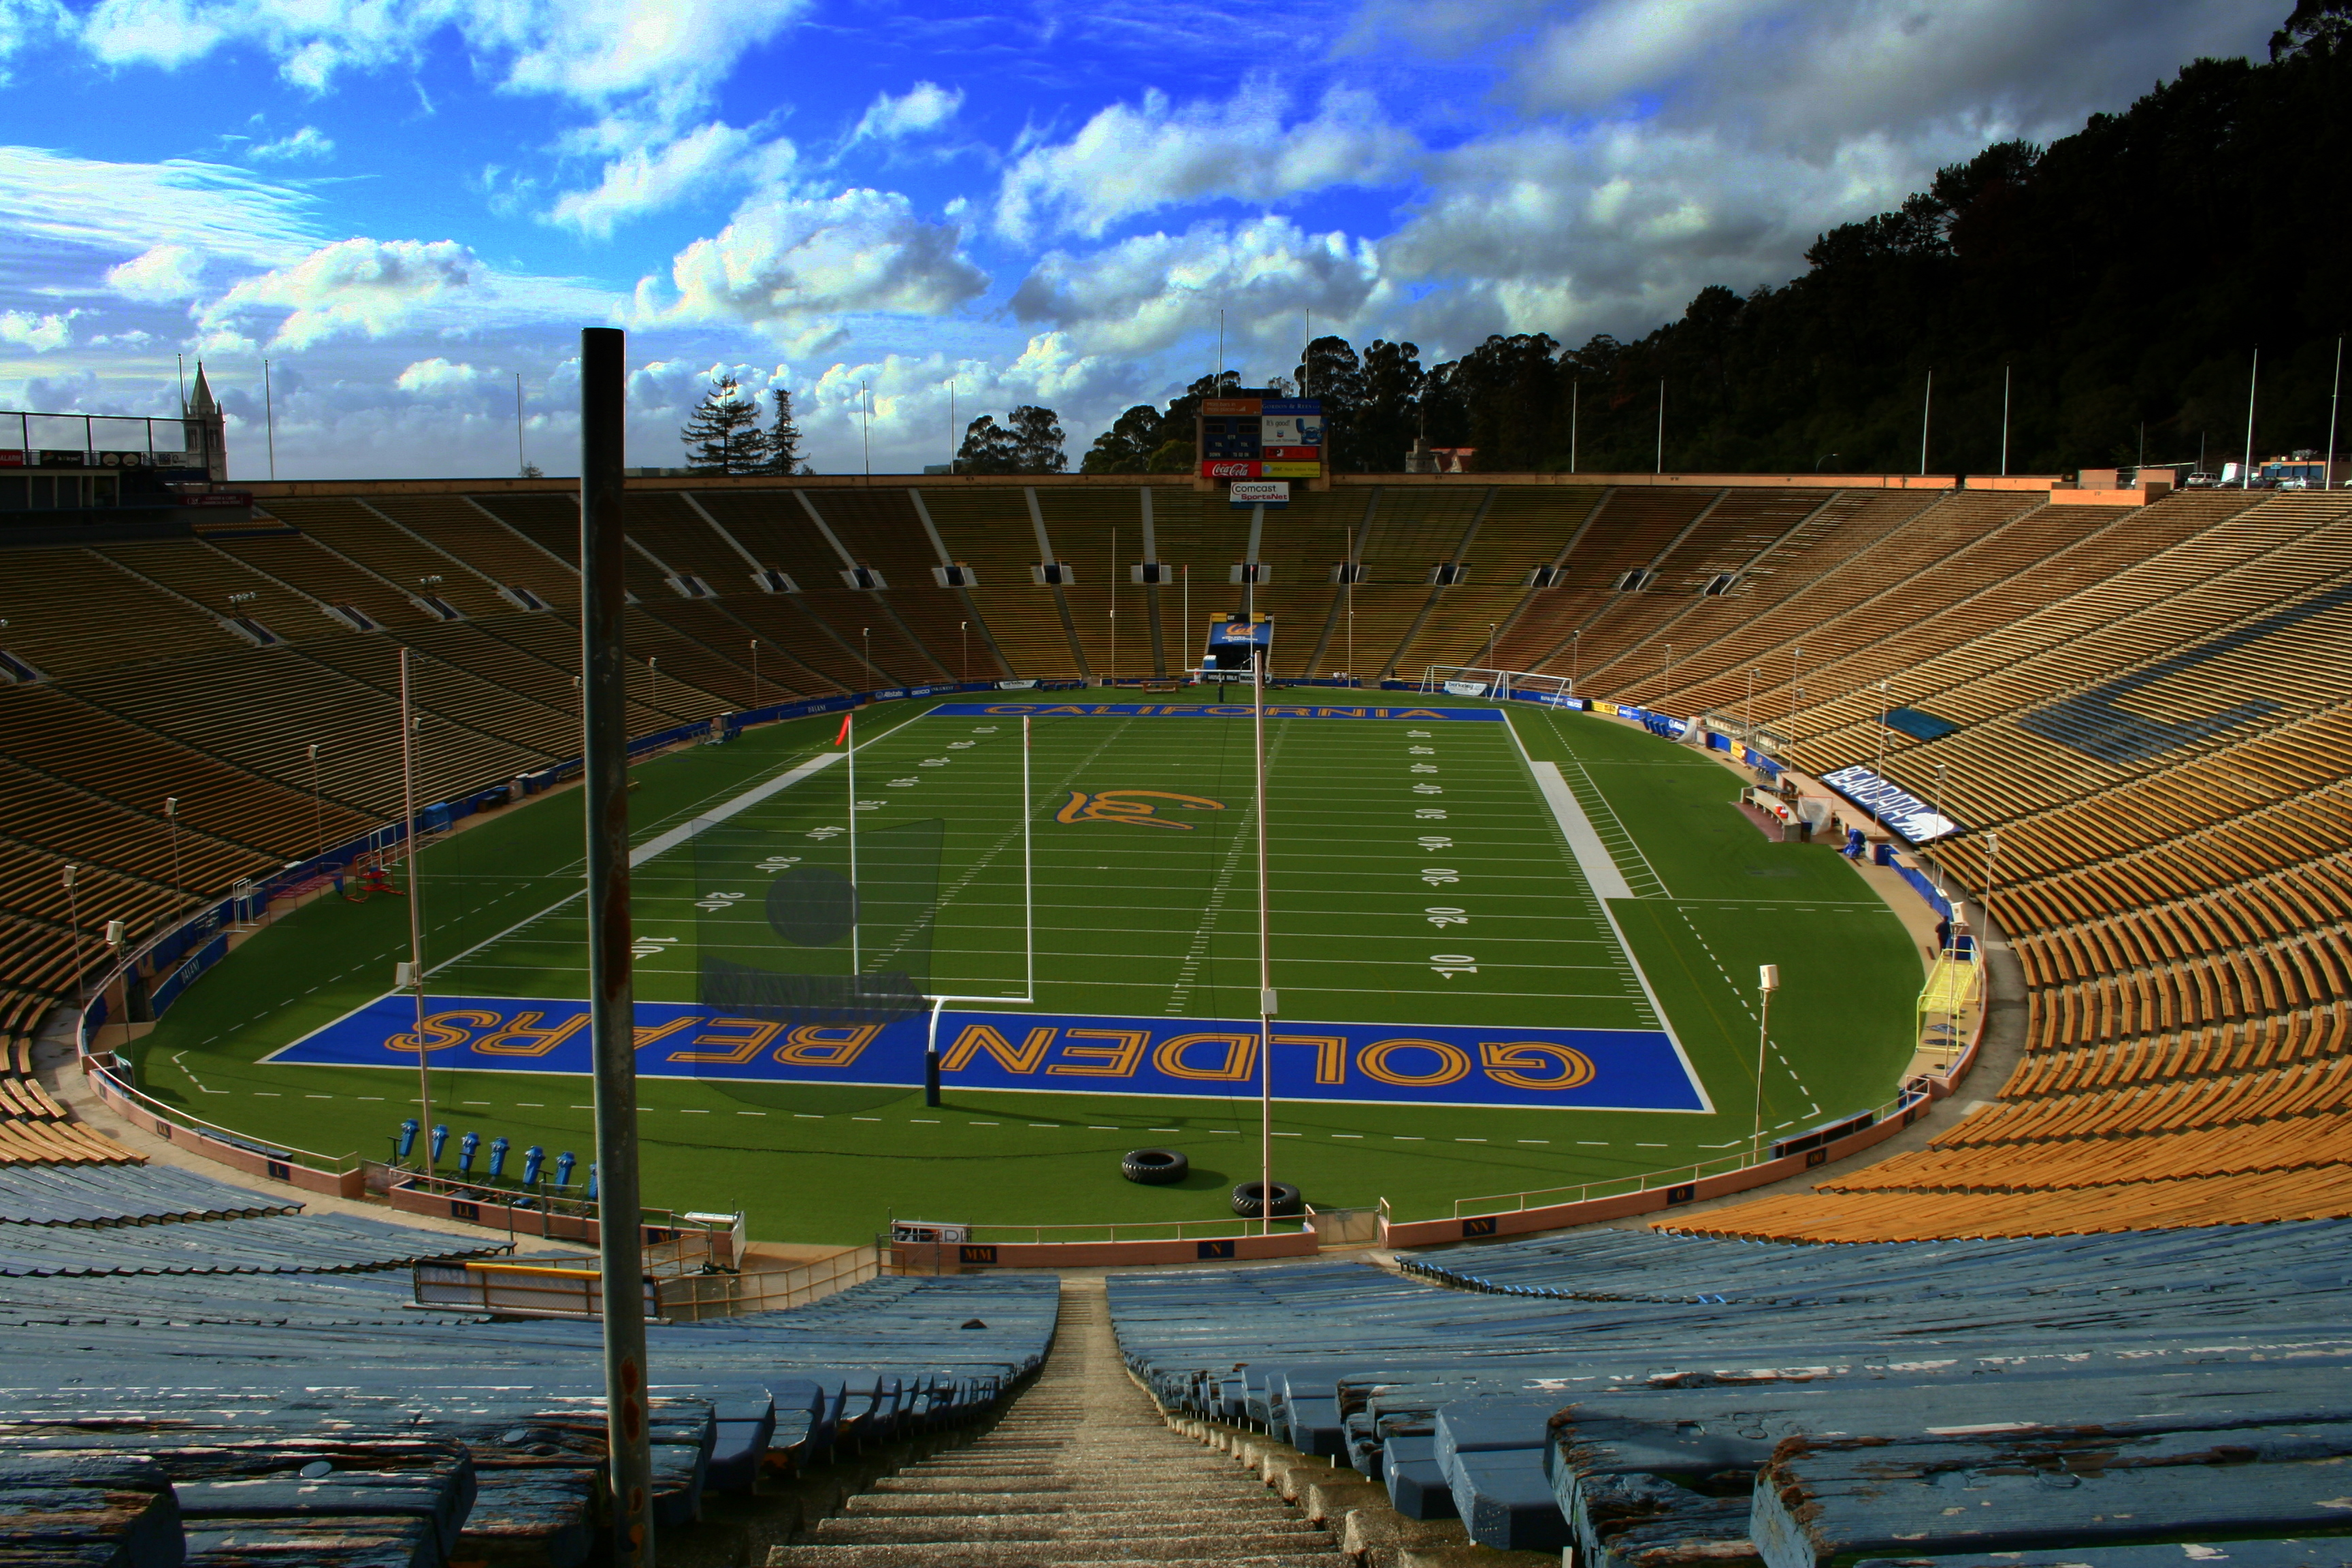 With Big Soccer Game Approaching Uc Berkeley Addresses Impacts From